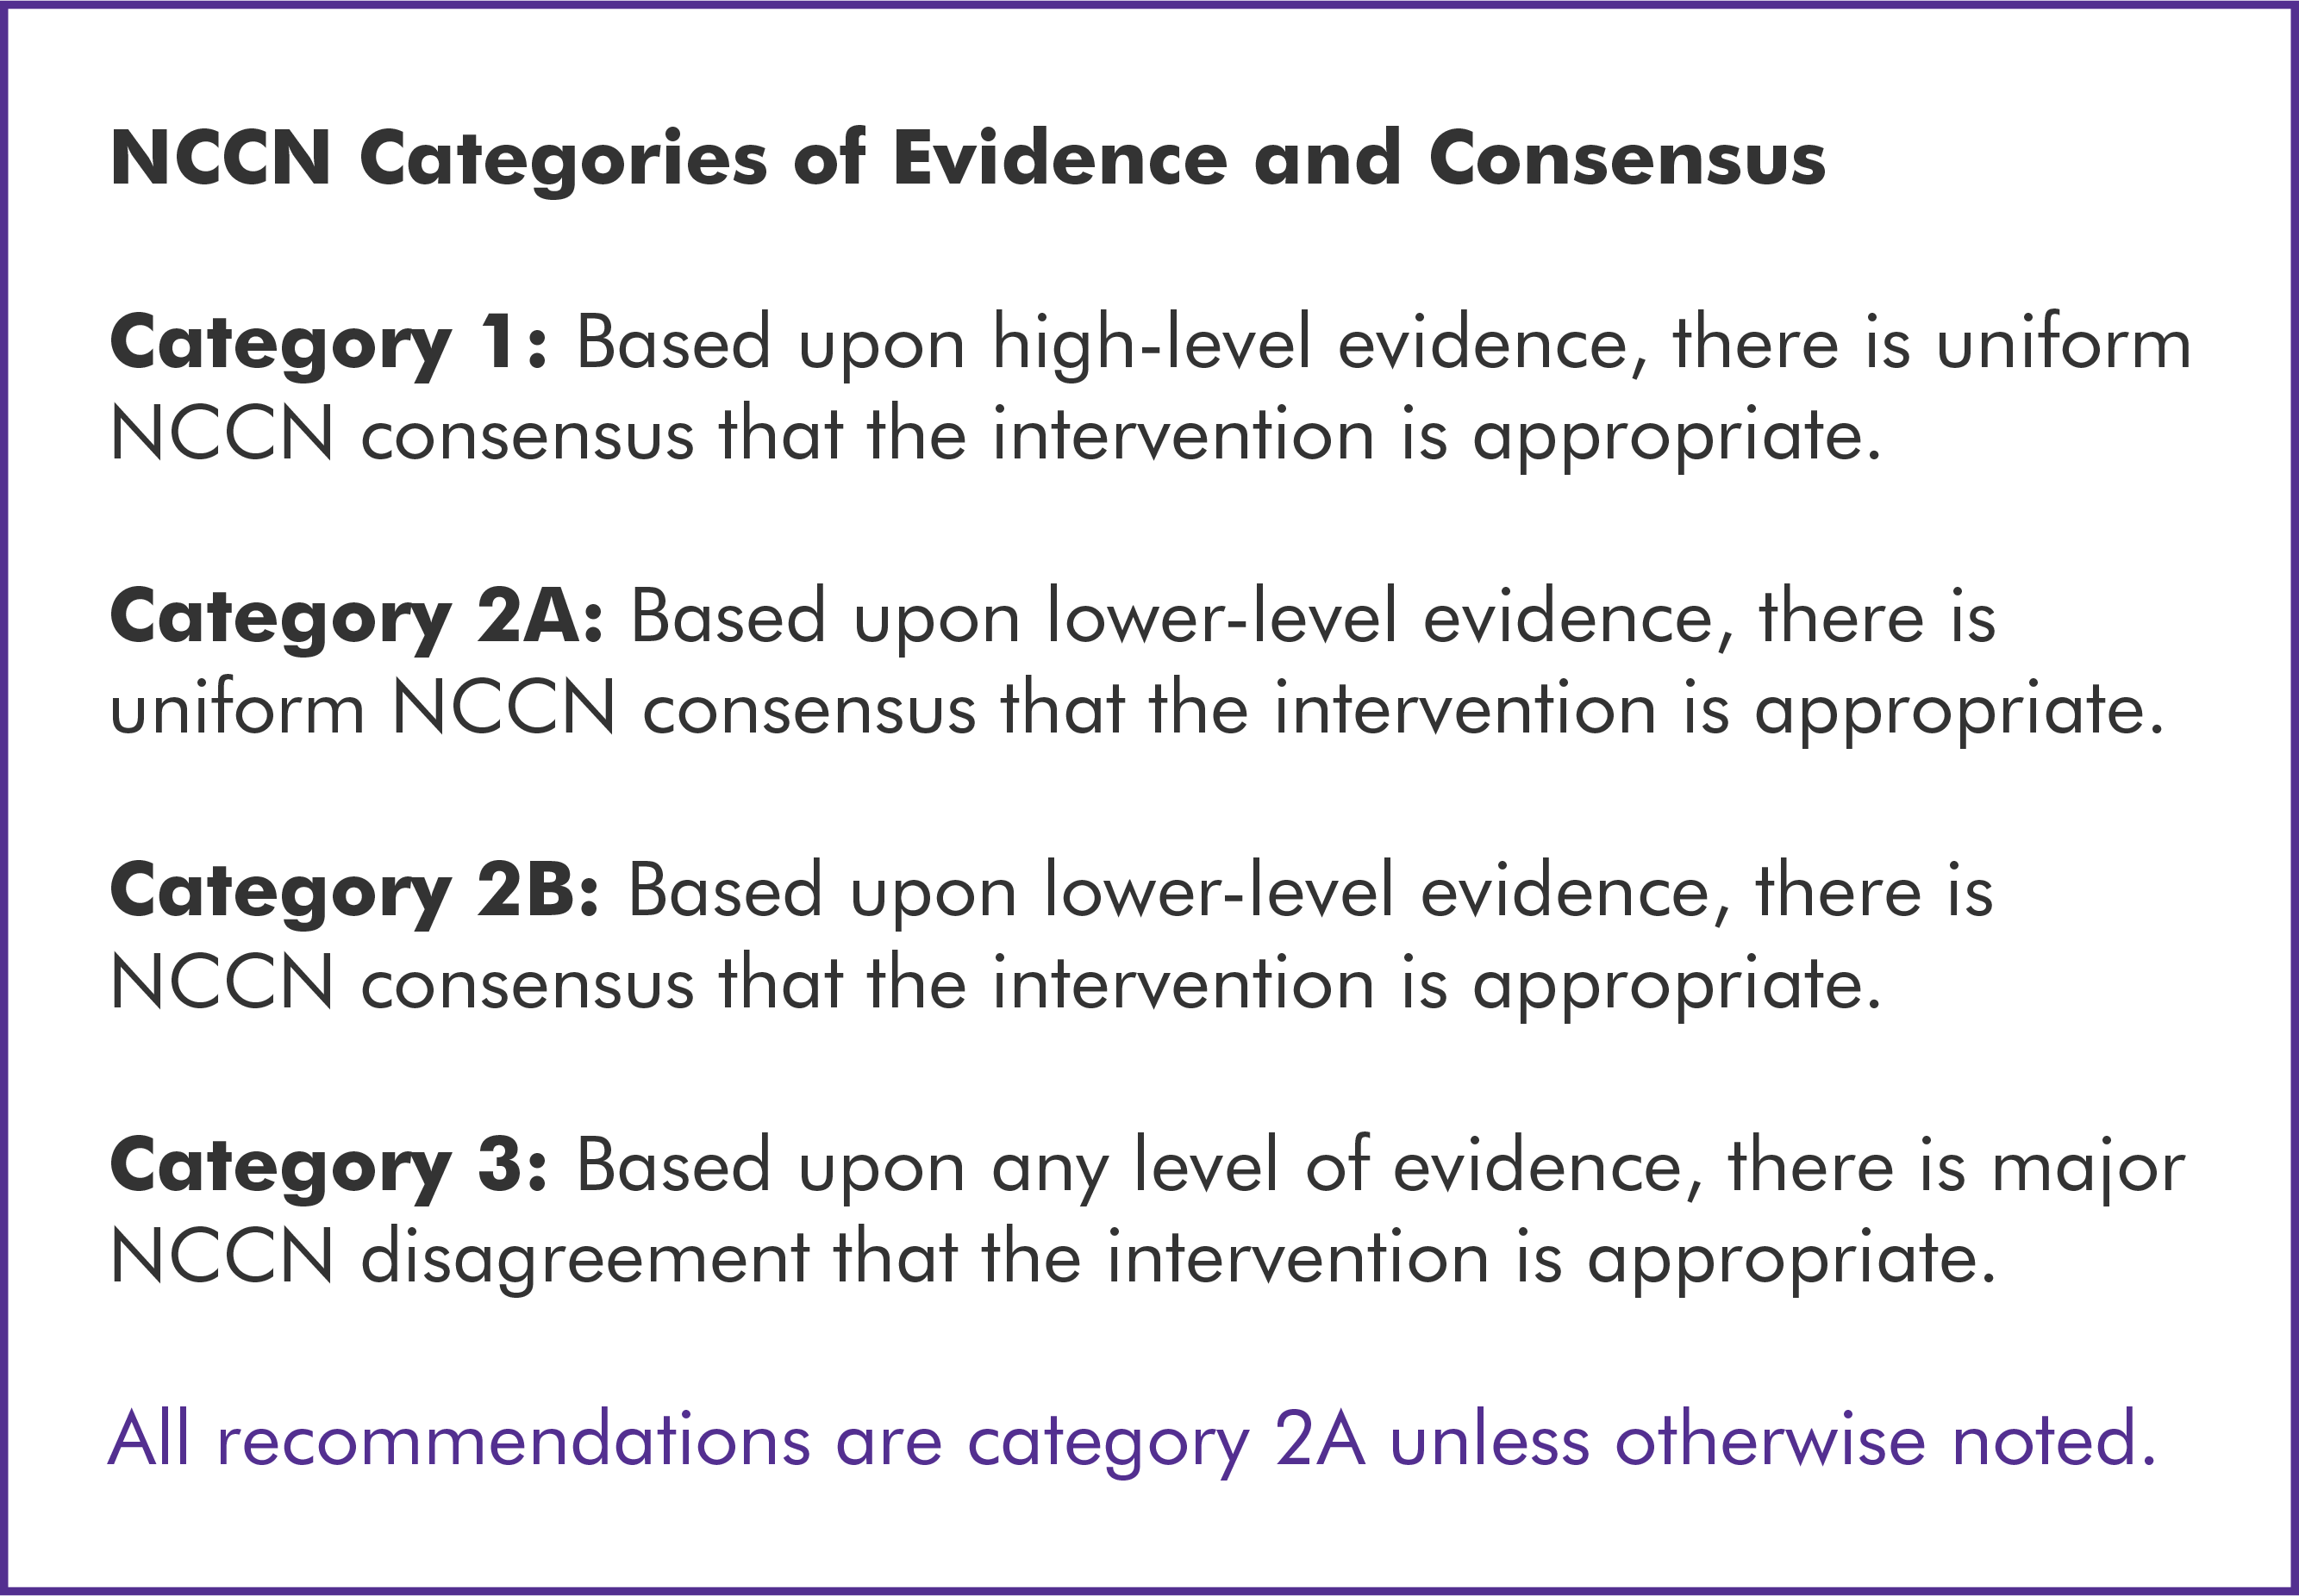 NCCN Categories of Evidence